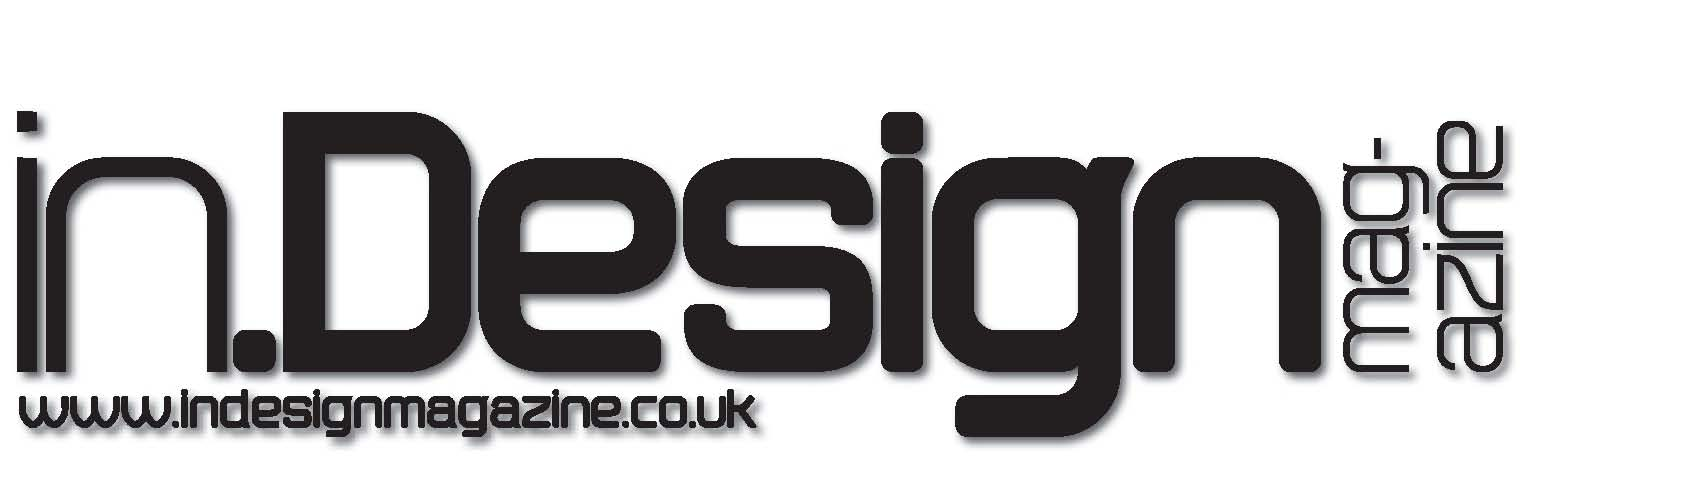 In design logo